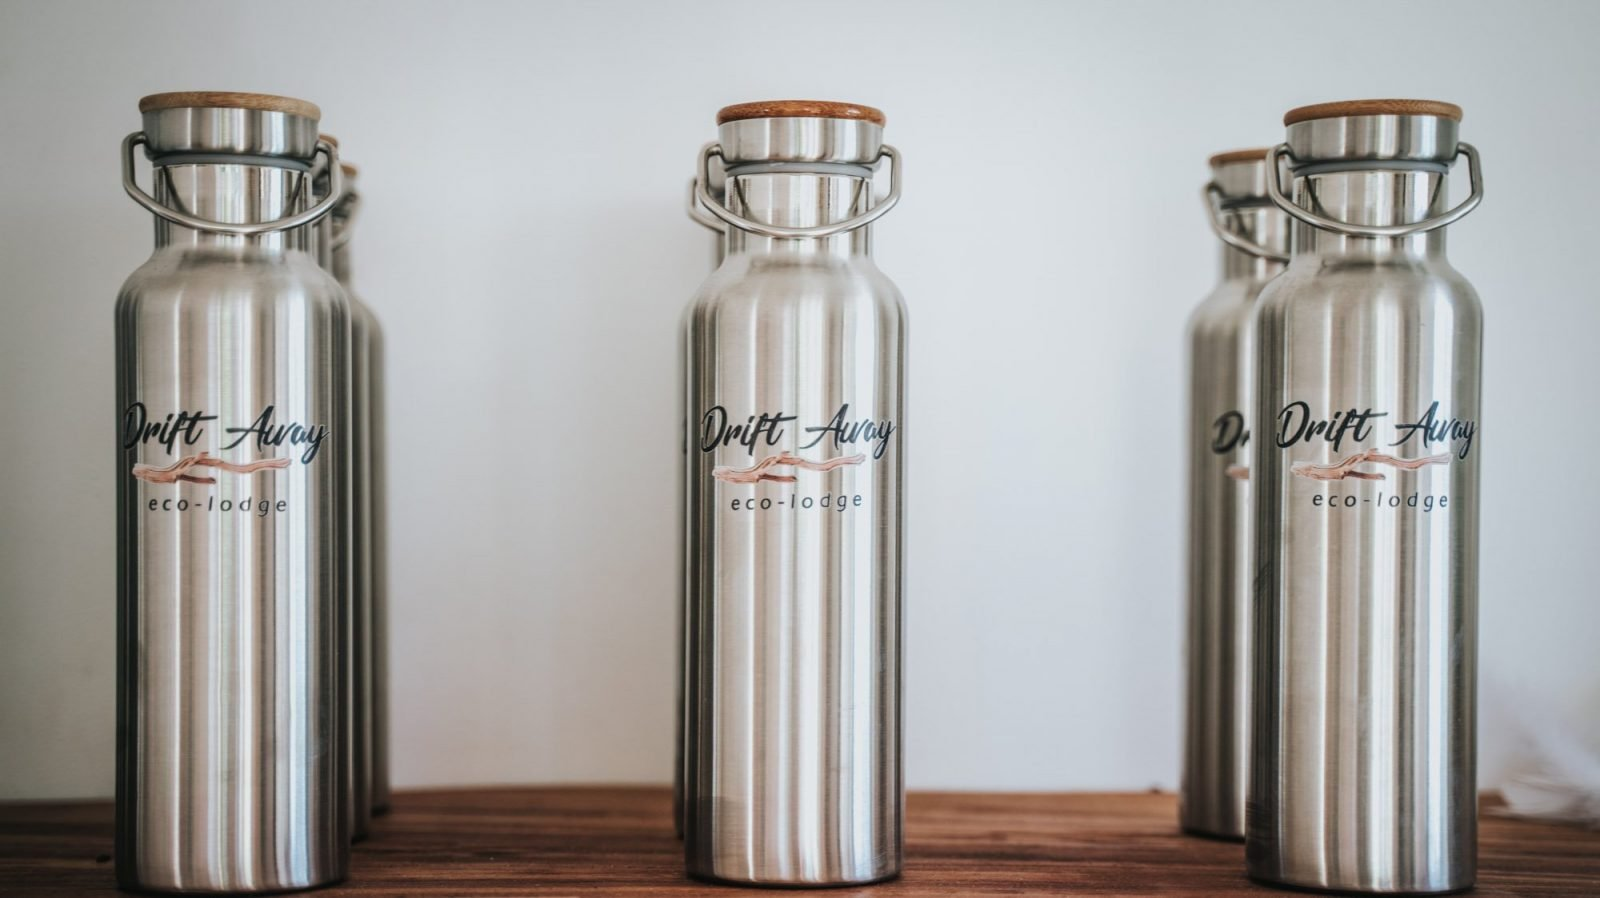 These stainless steel water bottles with the Drift Away logo are for sale in our hotel shop.